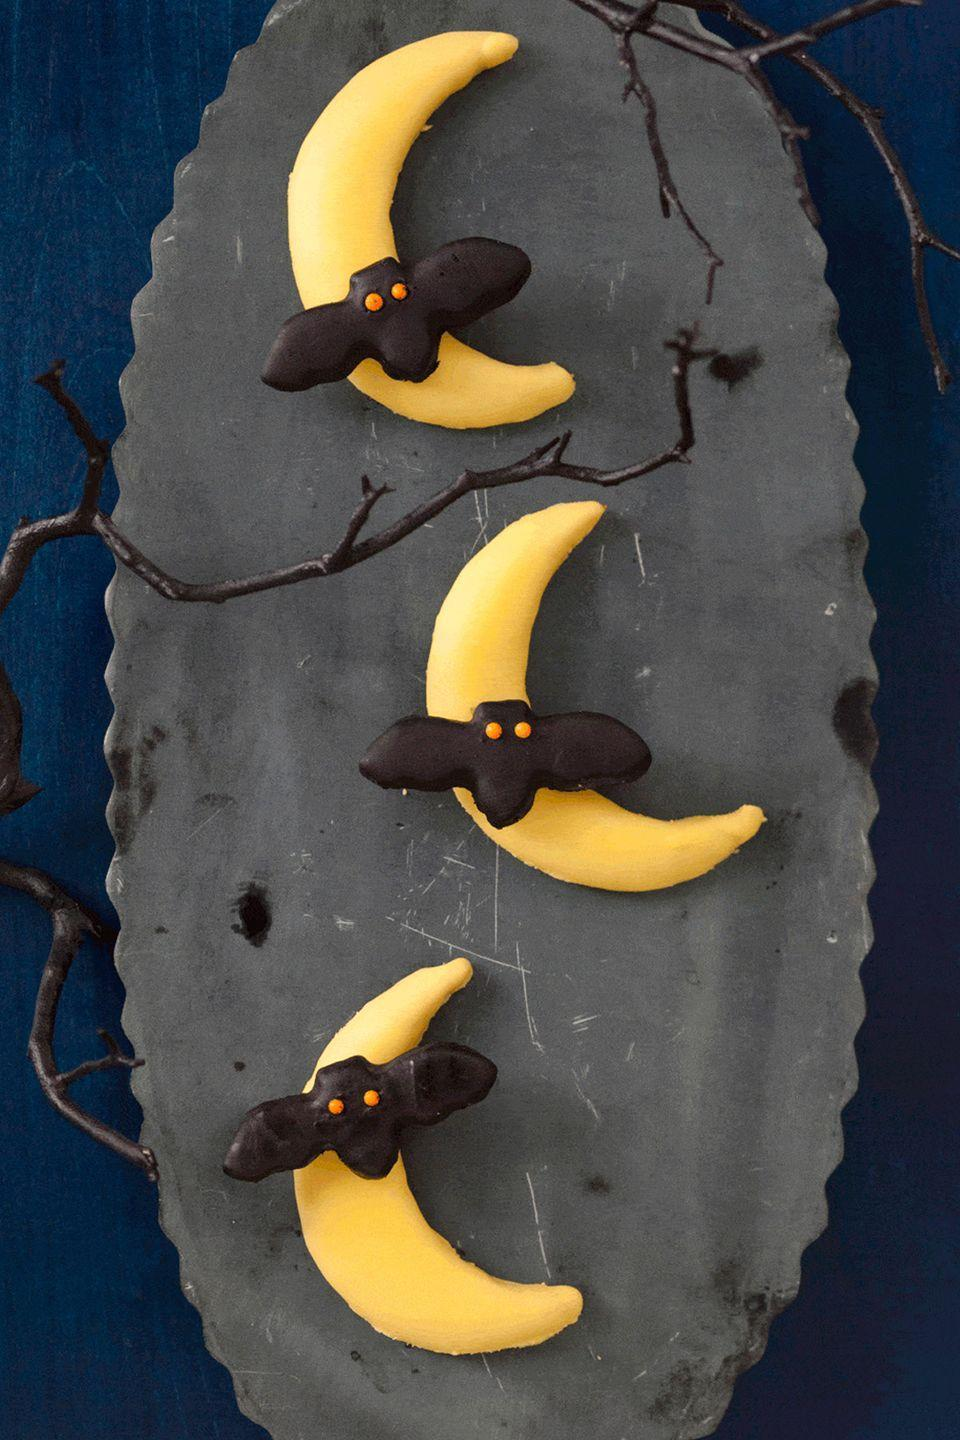 """<p>Bats are seriously underrated Halloween creature. Give them the attention they deserve with these eerie sweets.</p><p><em><strong><a href=""""https://www.womansday.com/food-recipes/food-drinks/recipes/a11390/bats-flying-across-the-moon-cookies-recipe-122707/"""" rel=""""nofollow noopener"""" target=""""_blank"""" data-ylk=""""slk:Get the Bats Flying Across the Moon Cookies recipe."""" class=""""link rapid-noclick-resp"""">Get the Bats Flying Across the Moon Cookies recipe.</a></strong></em></p>"""